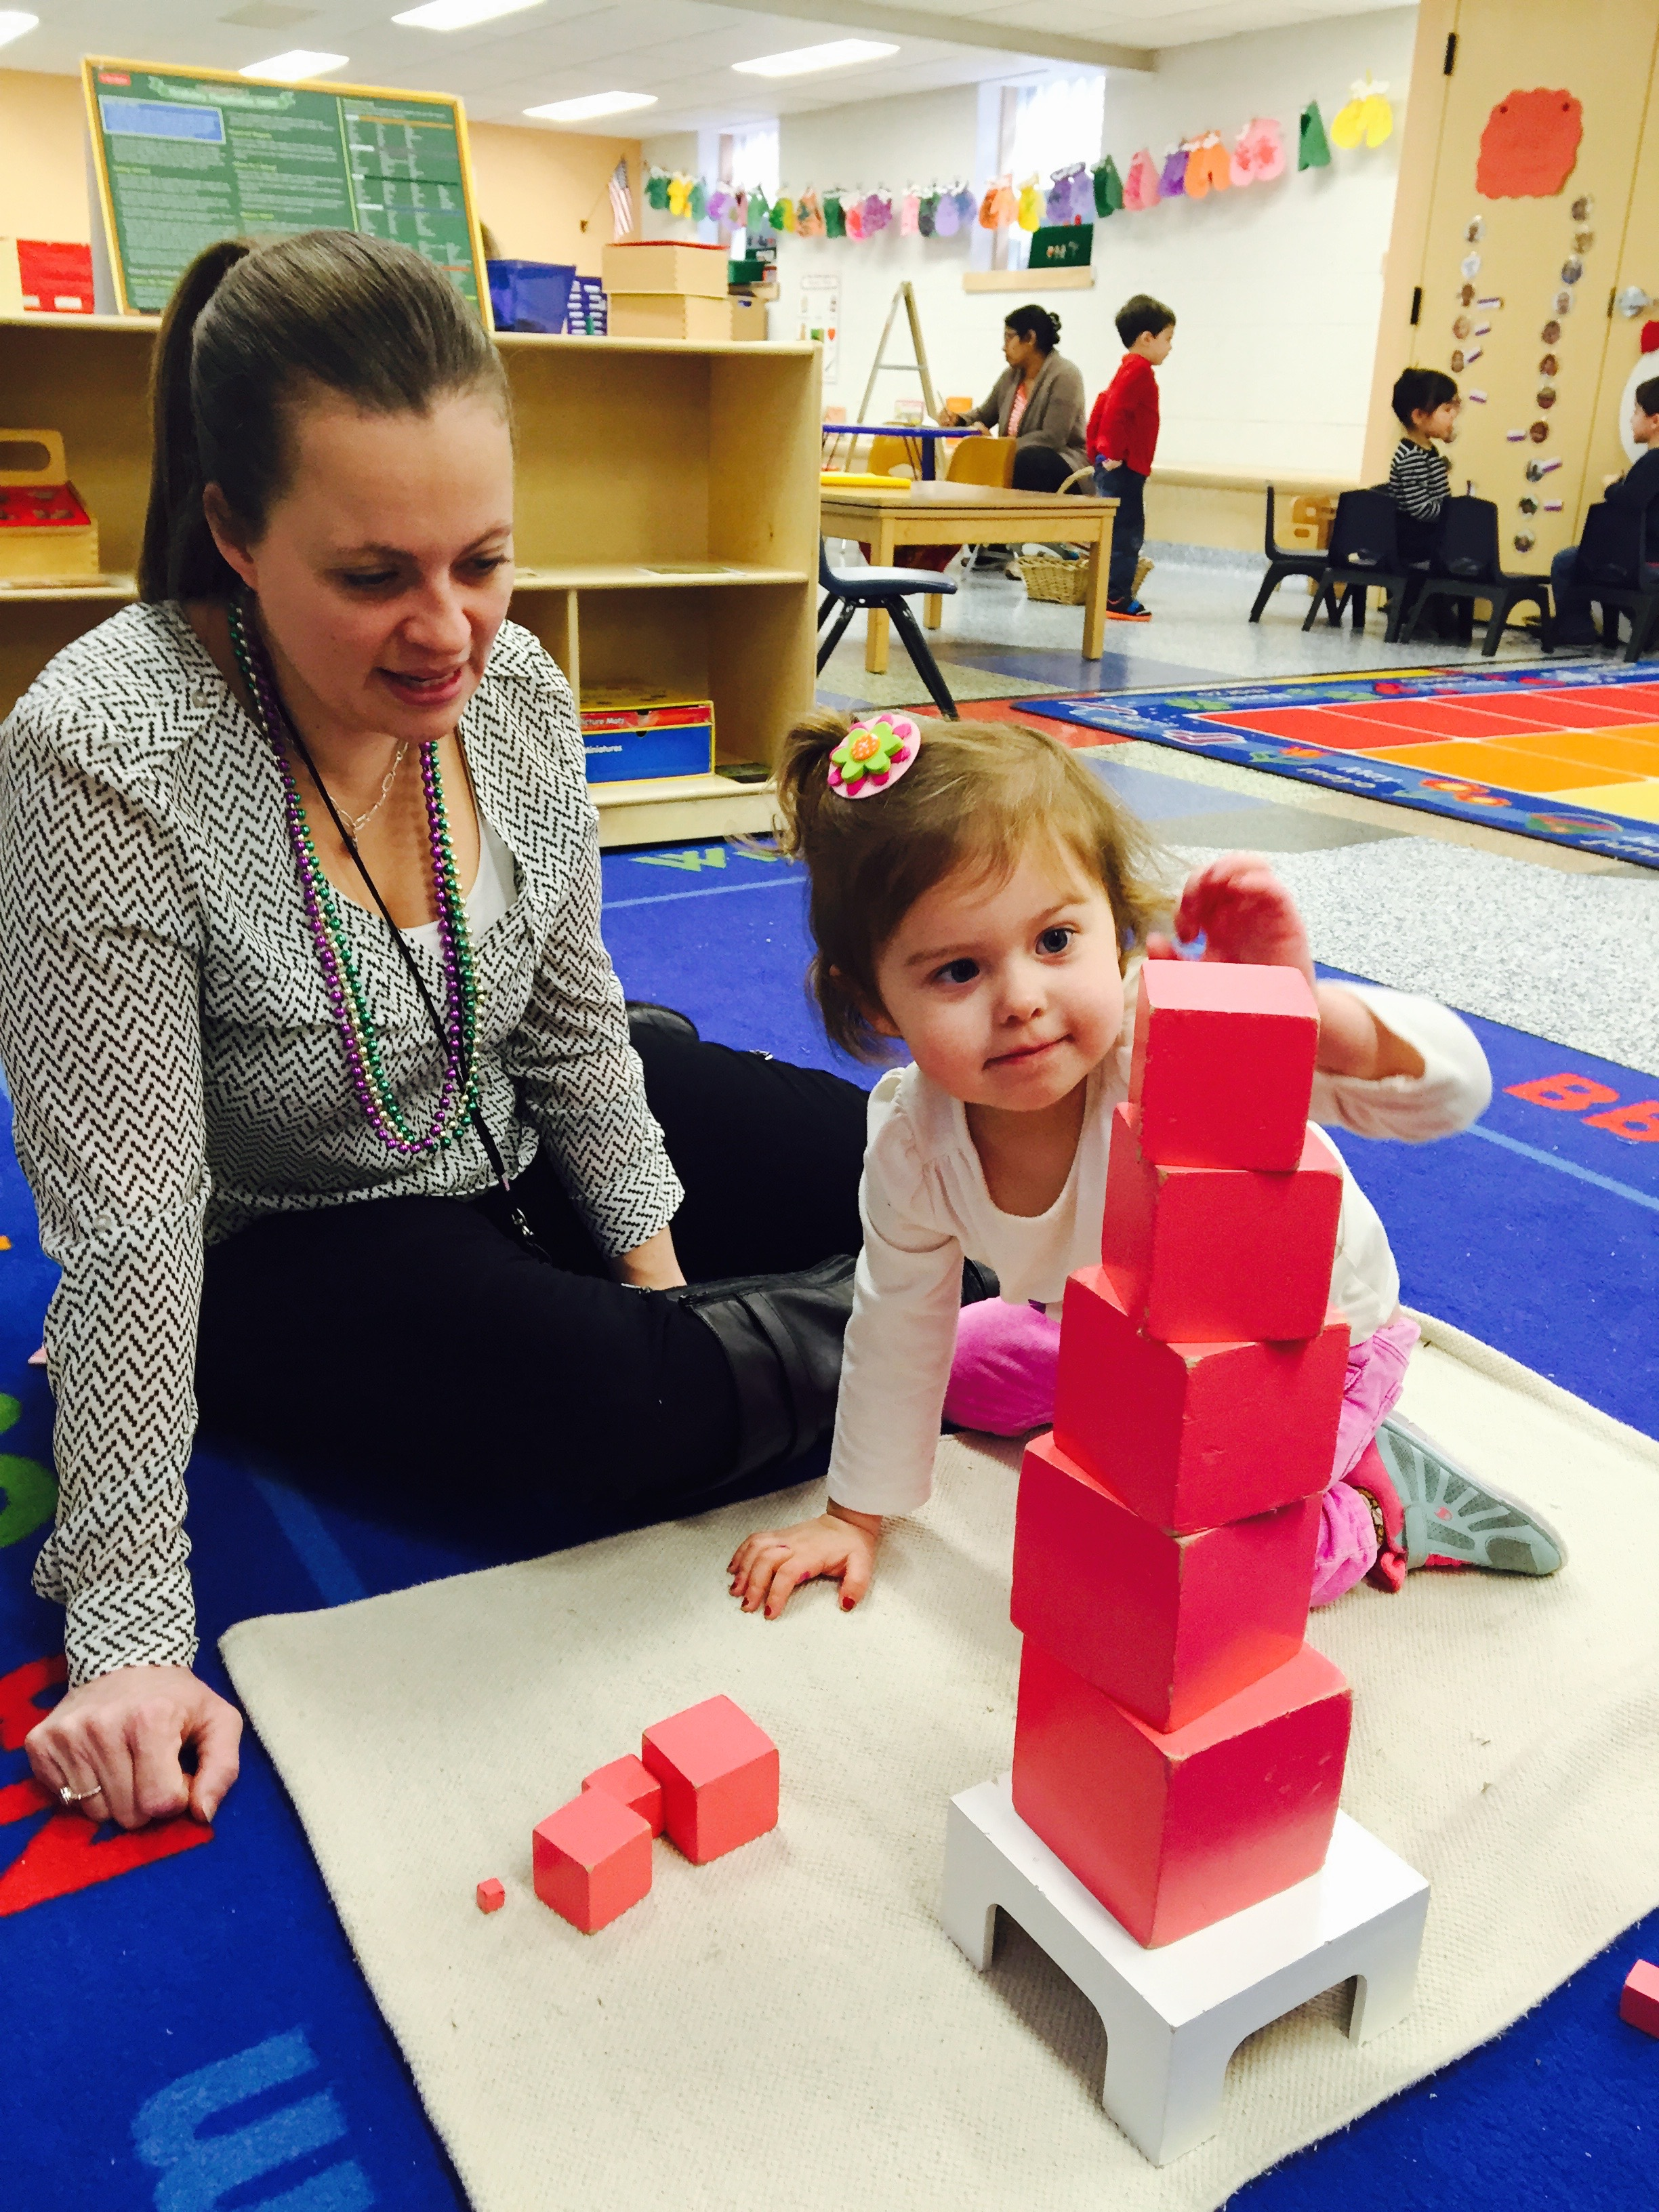 A teacher and young girl playing with blocks in a early childhood classroom